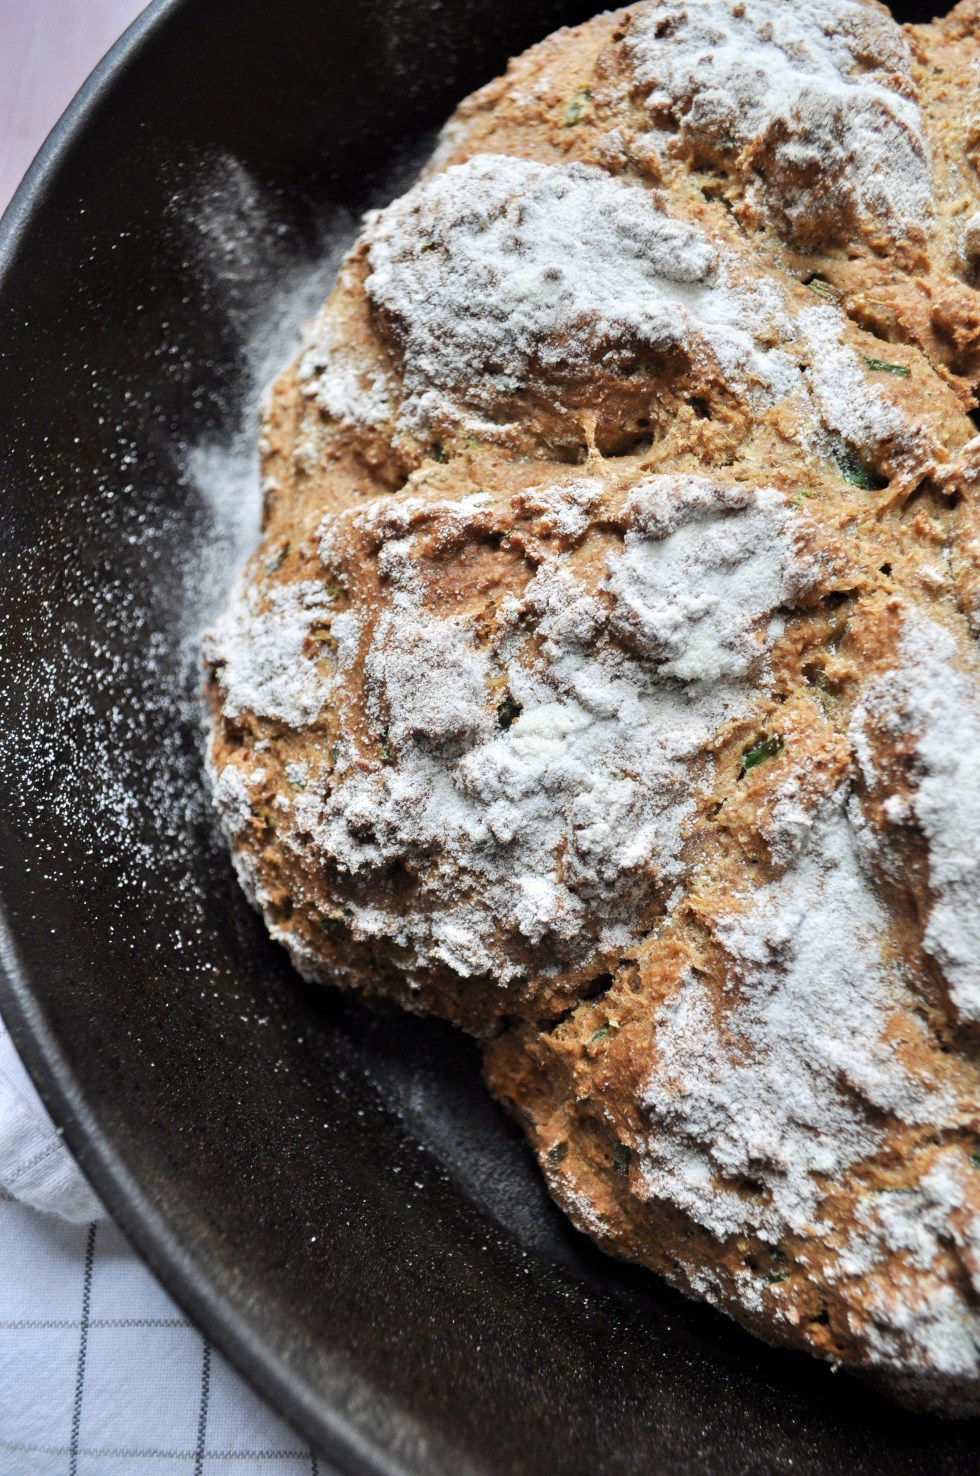 A hearty multigrain irish soda bread chalked full of green chives (instead of food coloring) and perfect with a pat of butter.